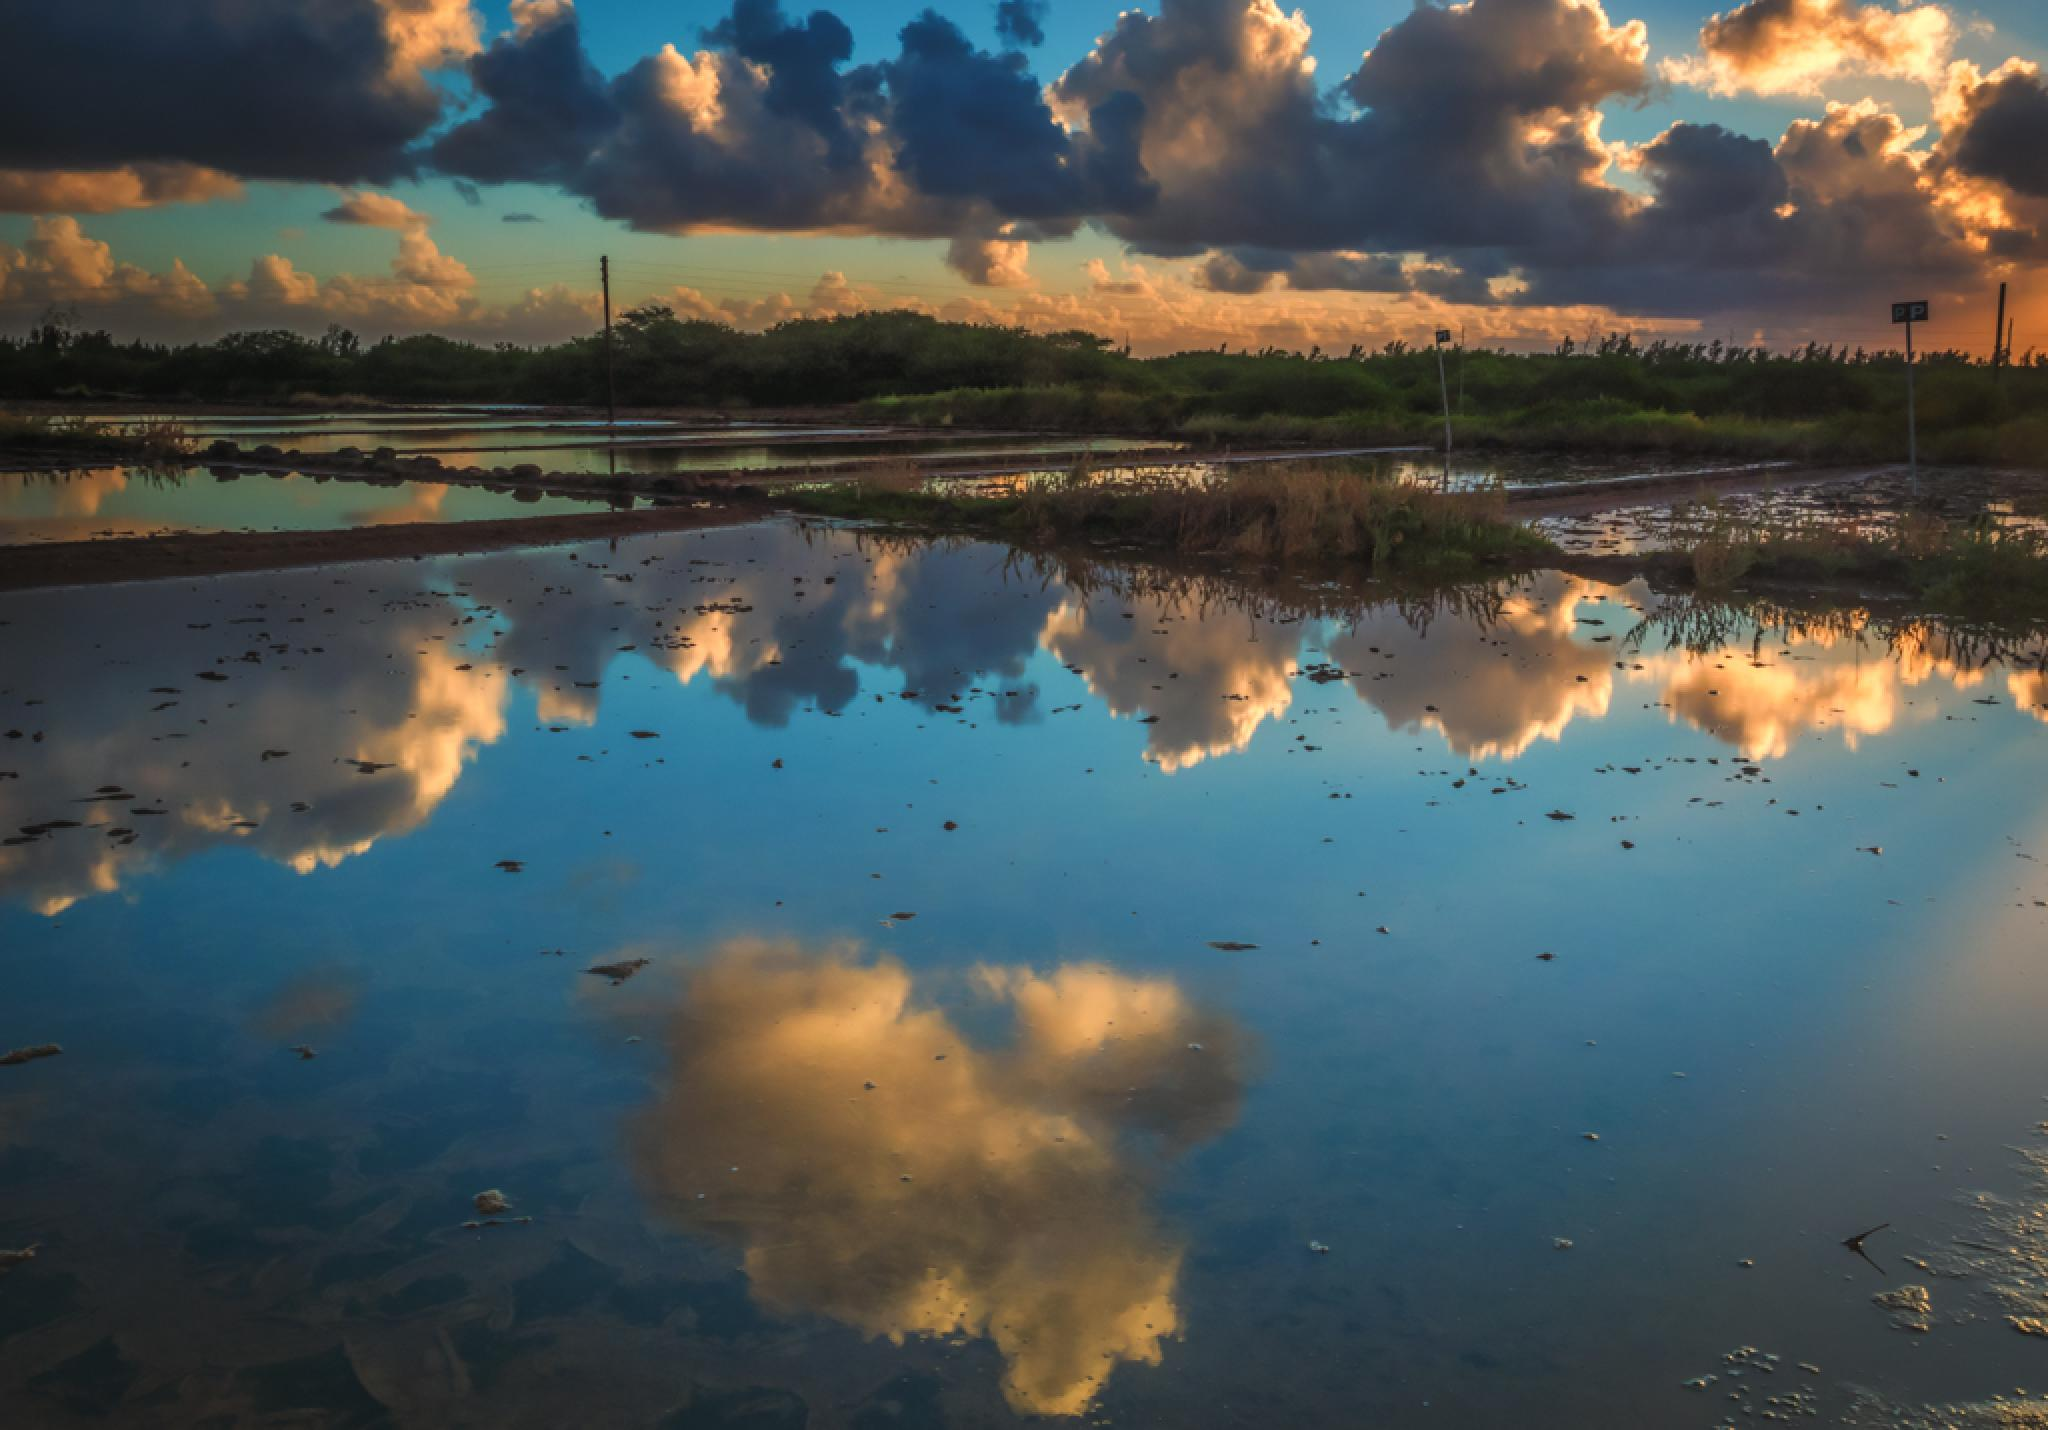 Reflection in salt pans by desire.lilyman